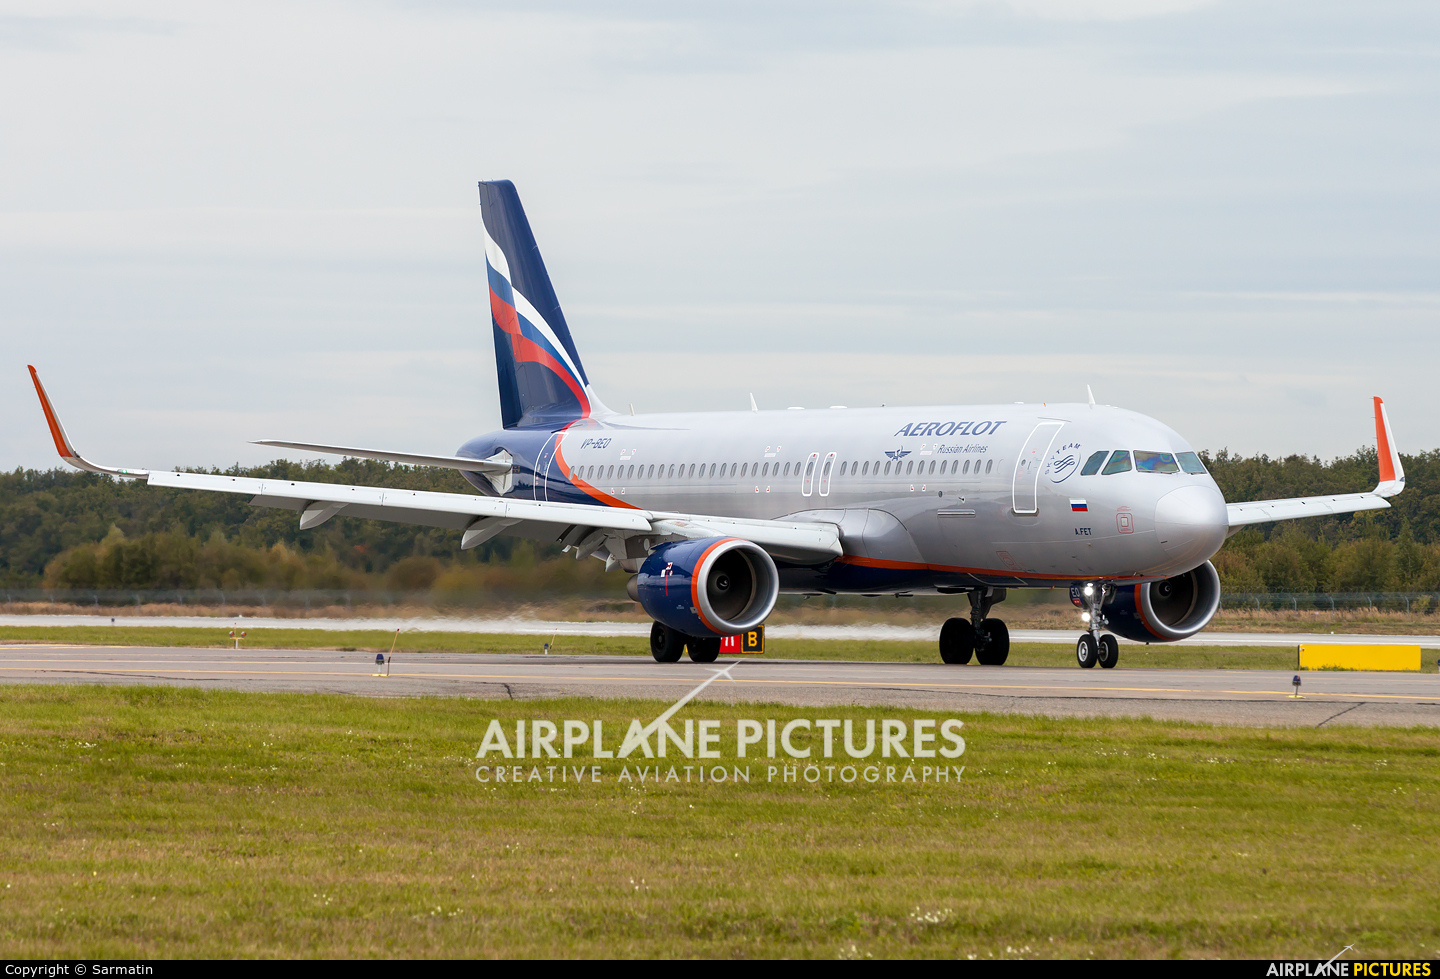 Aeroflot VP-BEO aircraft at Kazan